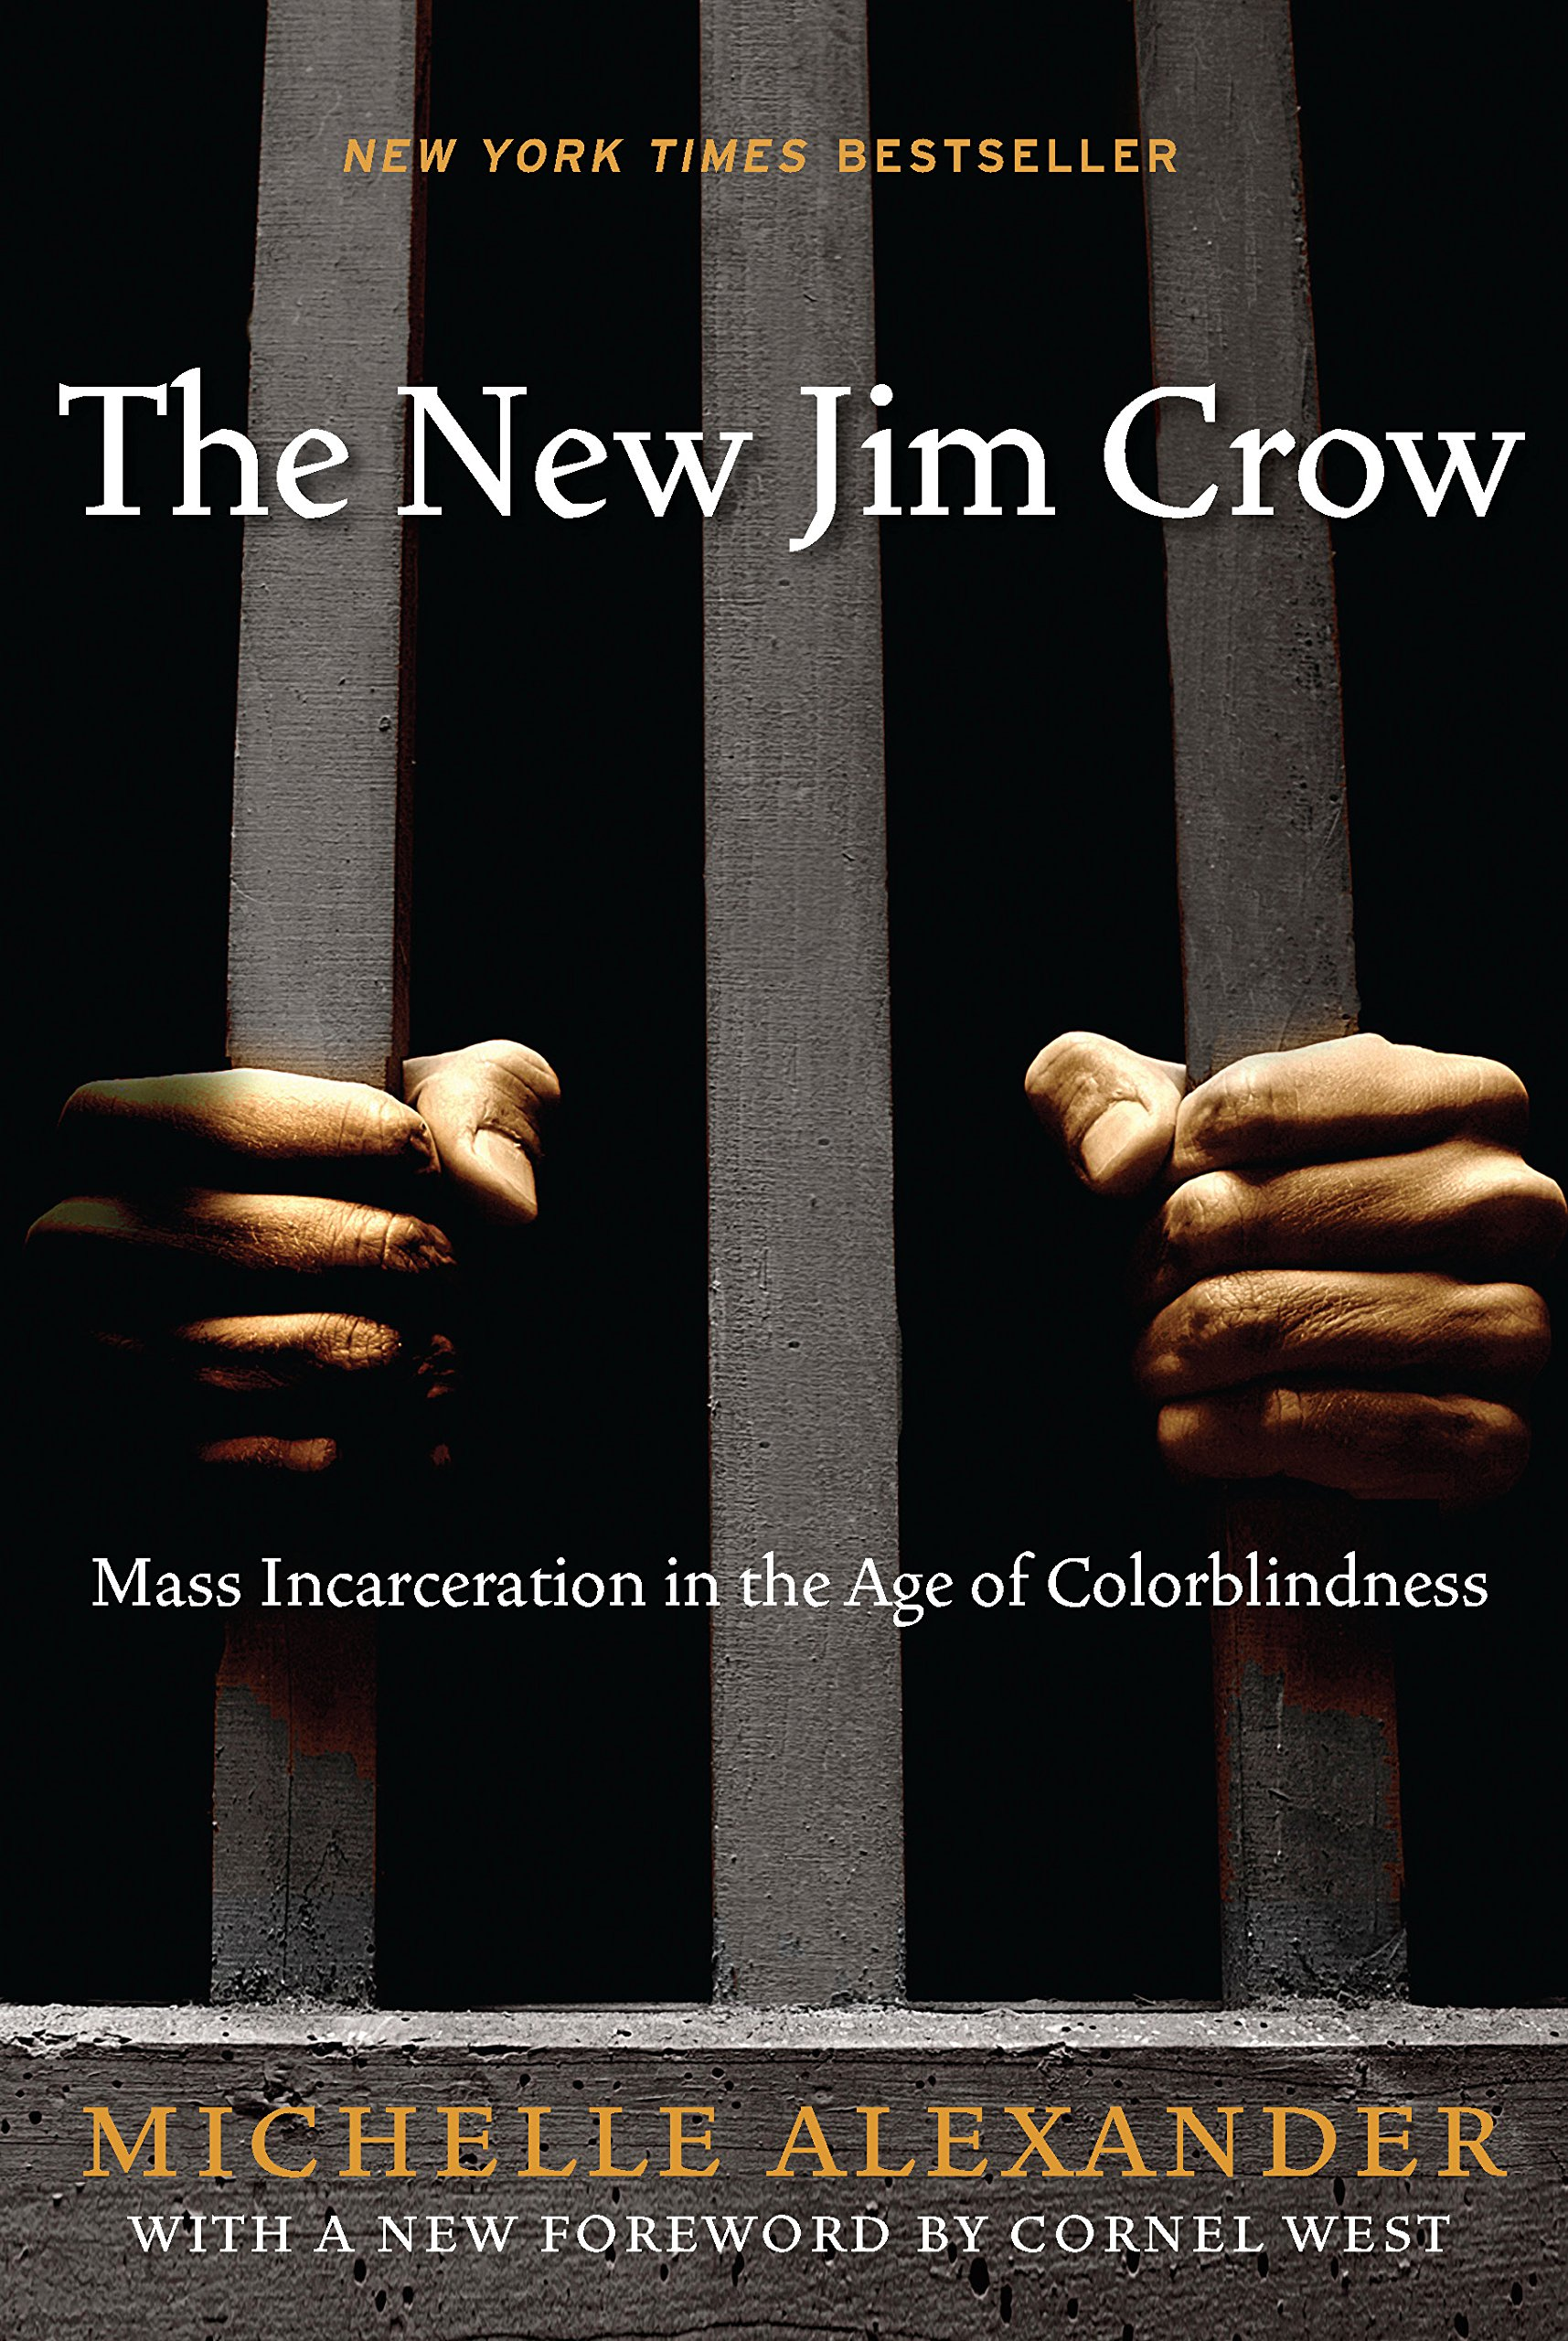 Book Discussion:  The New Jim Crow:  Mass Incarceration in the Age of Colorblindness by Michelle Alexander